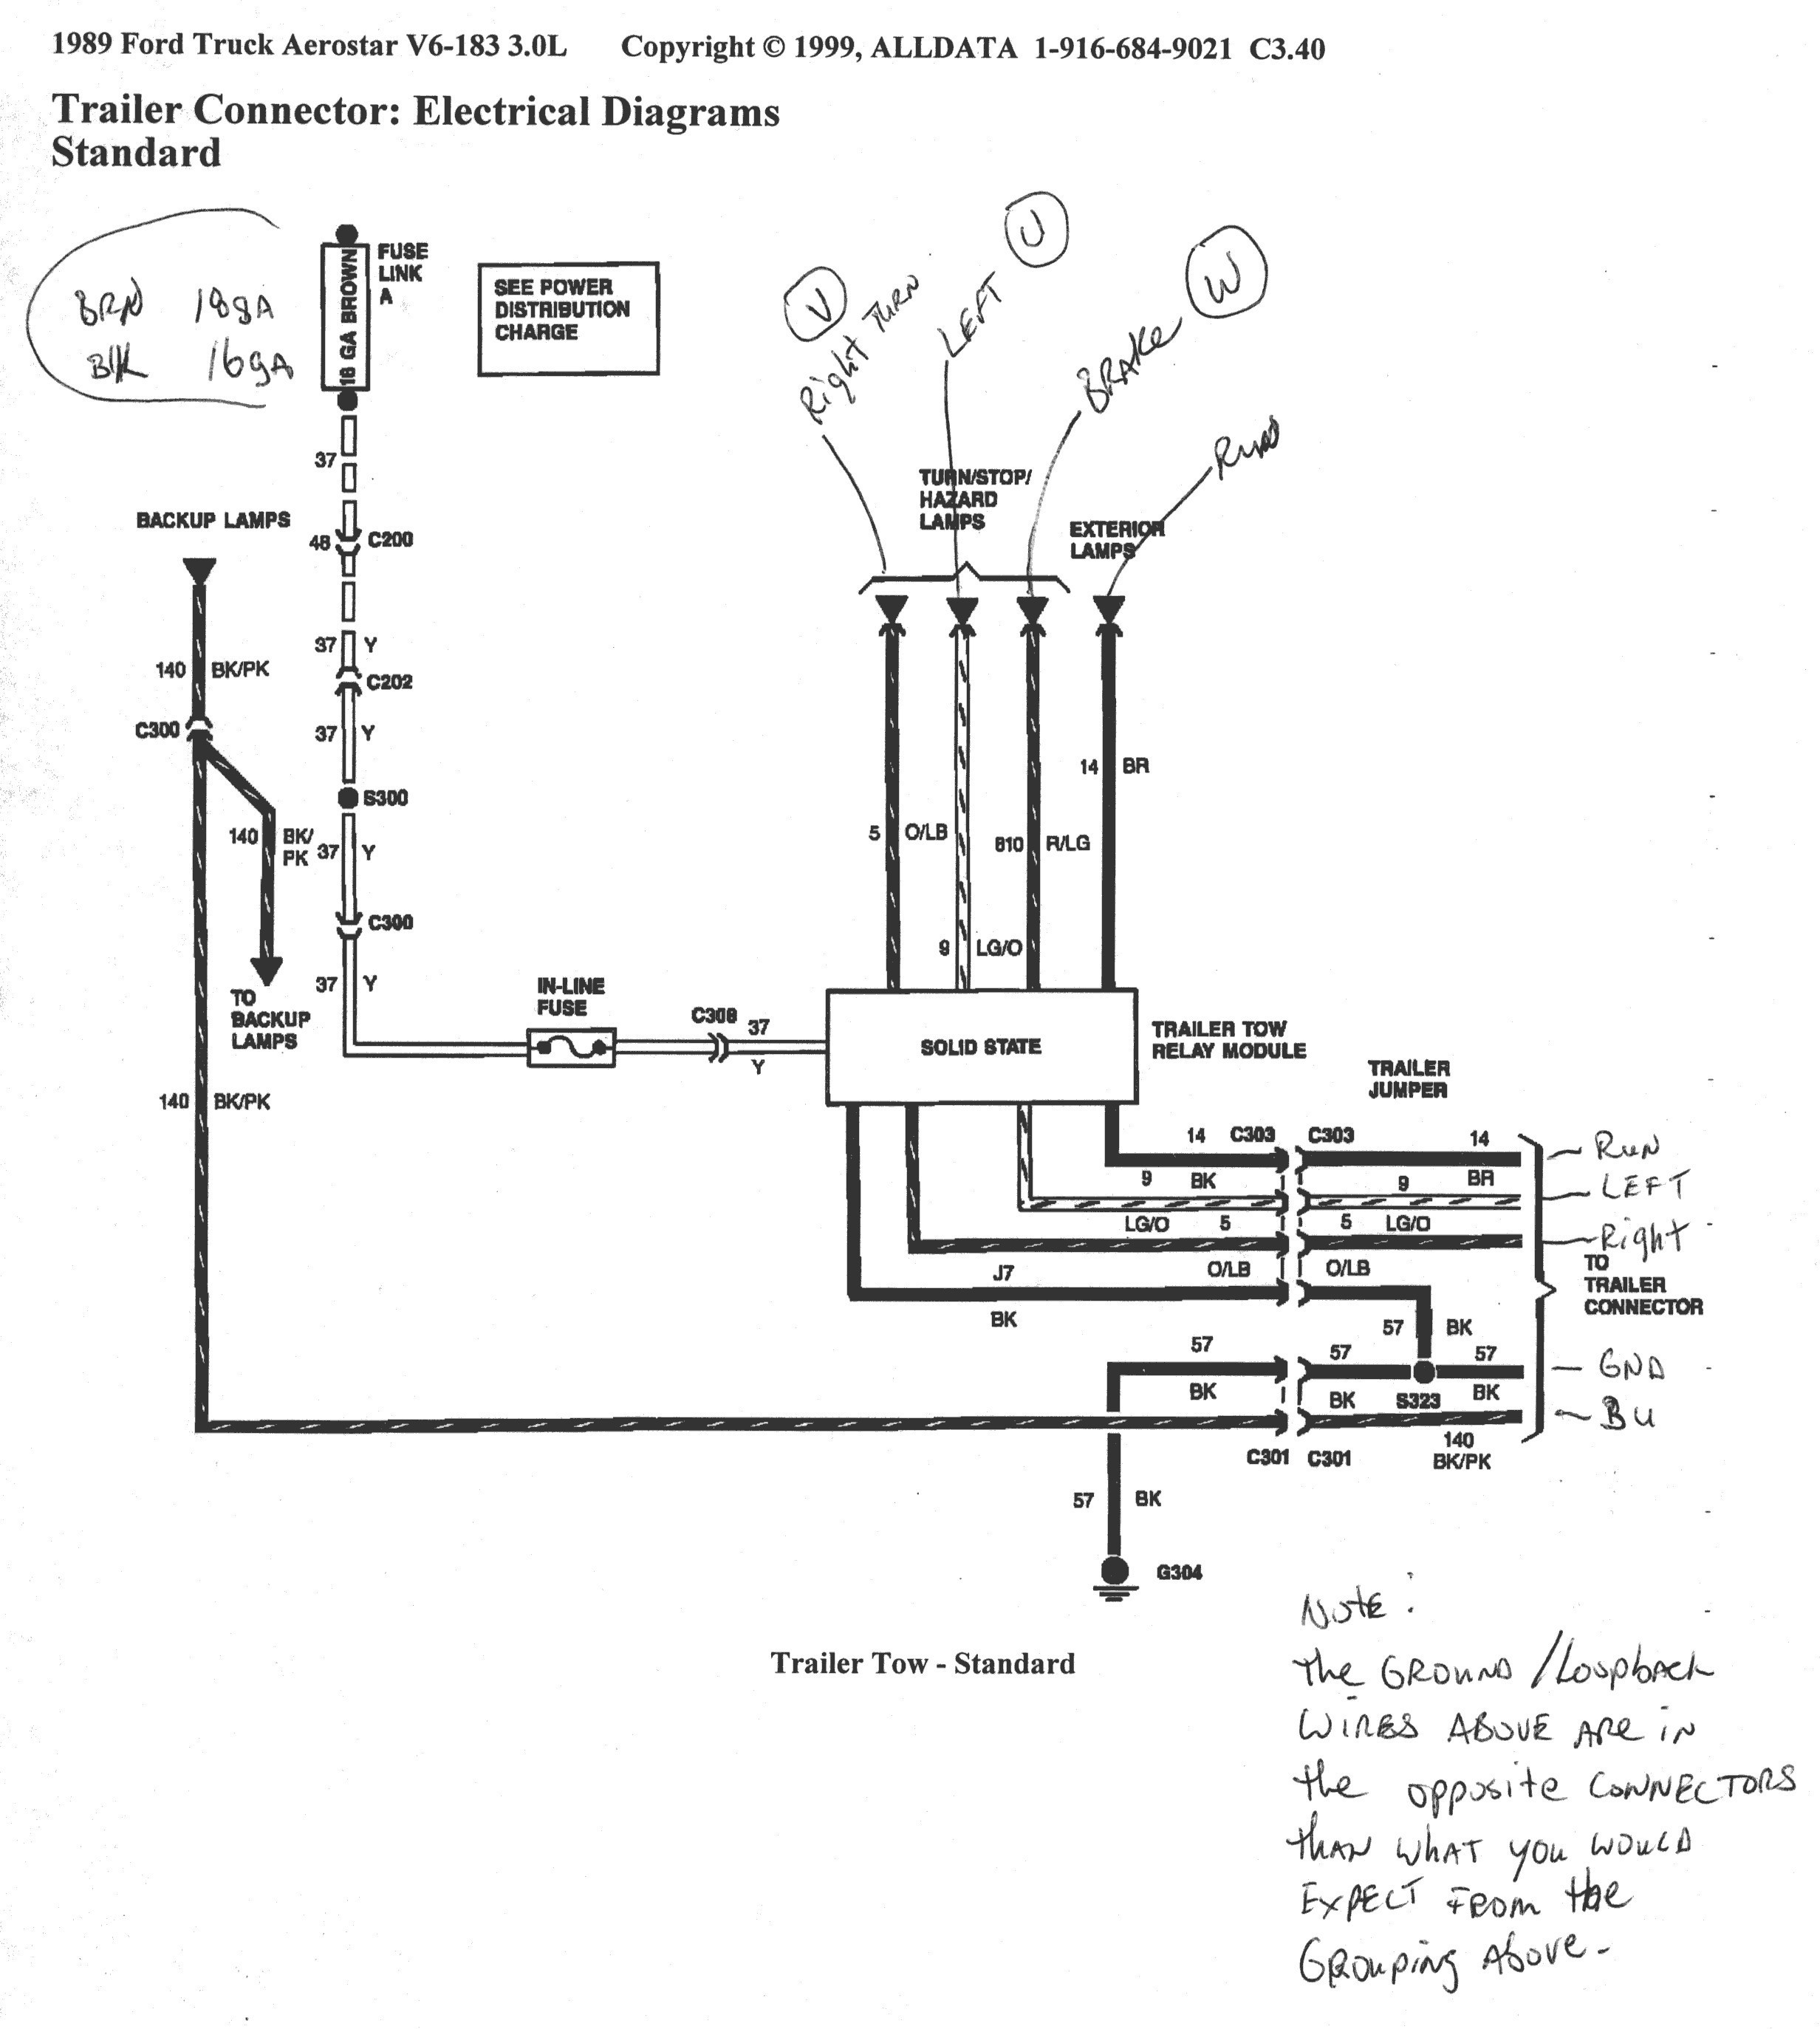 Circle J Trailer Wiring Diagrams | Manual E-Books - Circle J Trailer Wiring Diagram